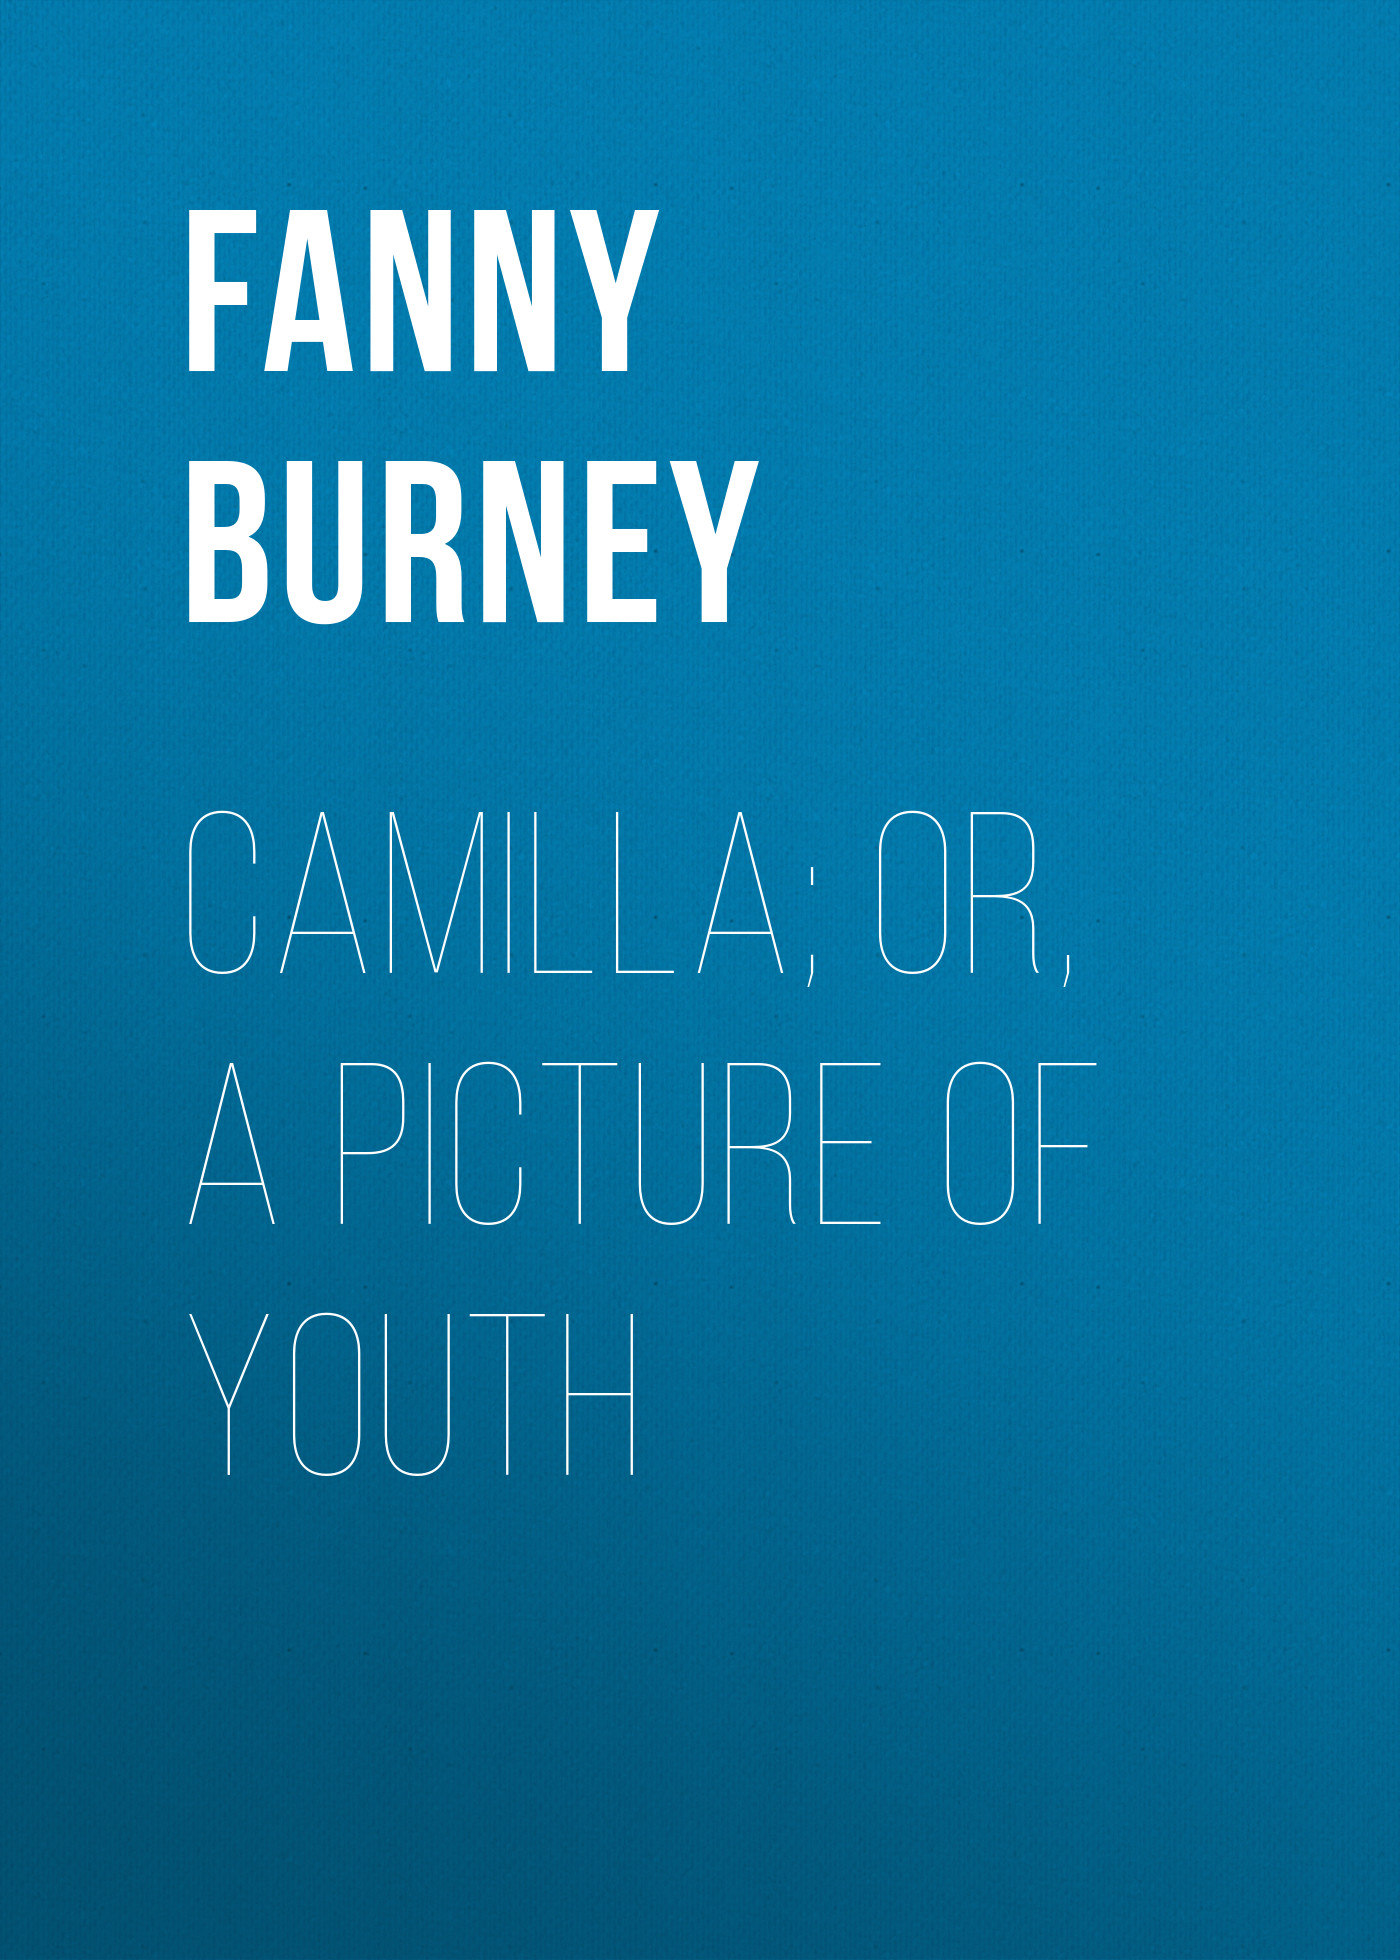 Burney Fanny Camilla; or, A Picture of Youth